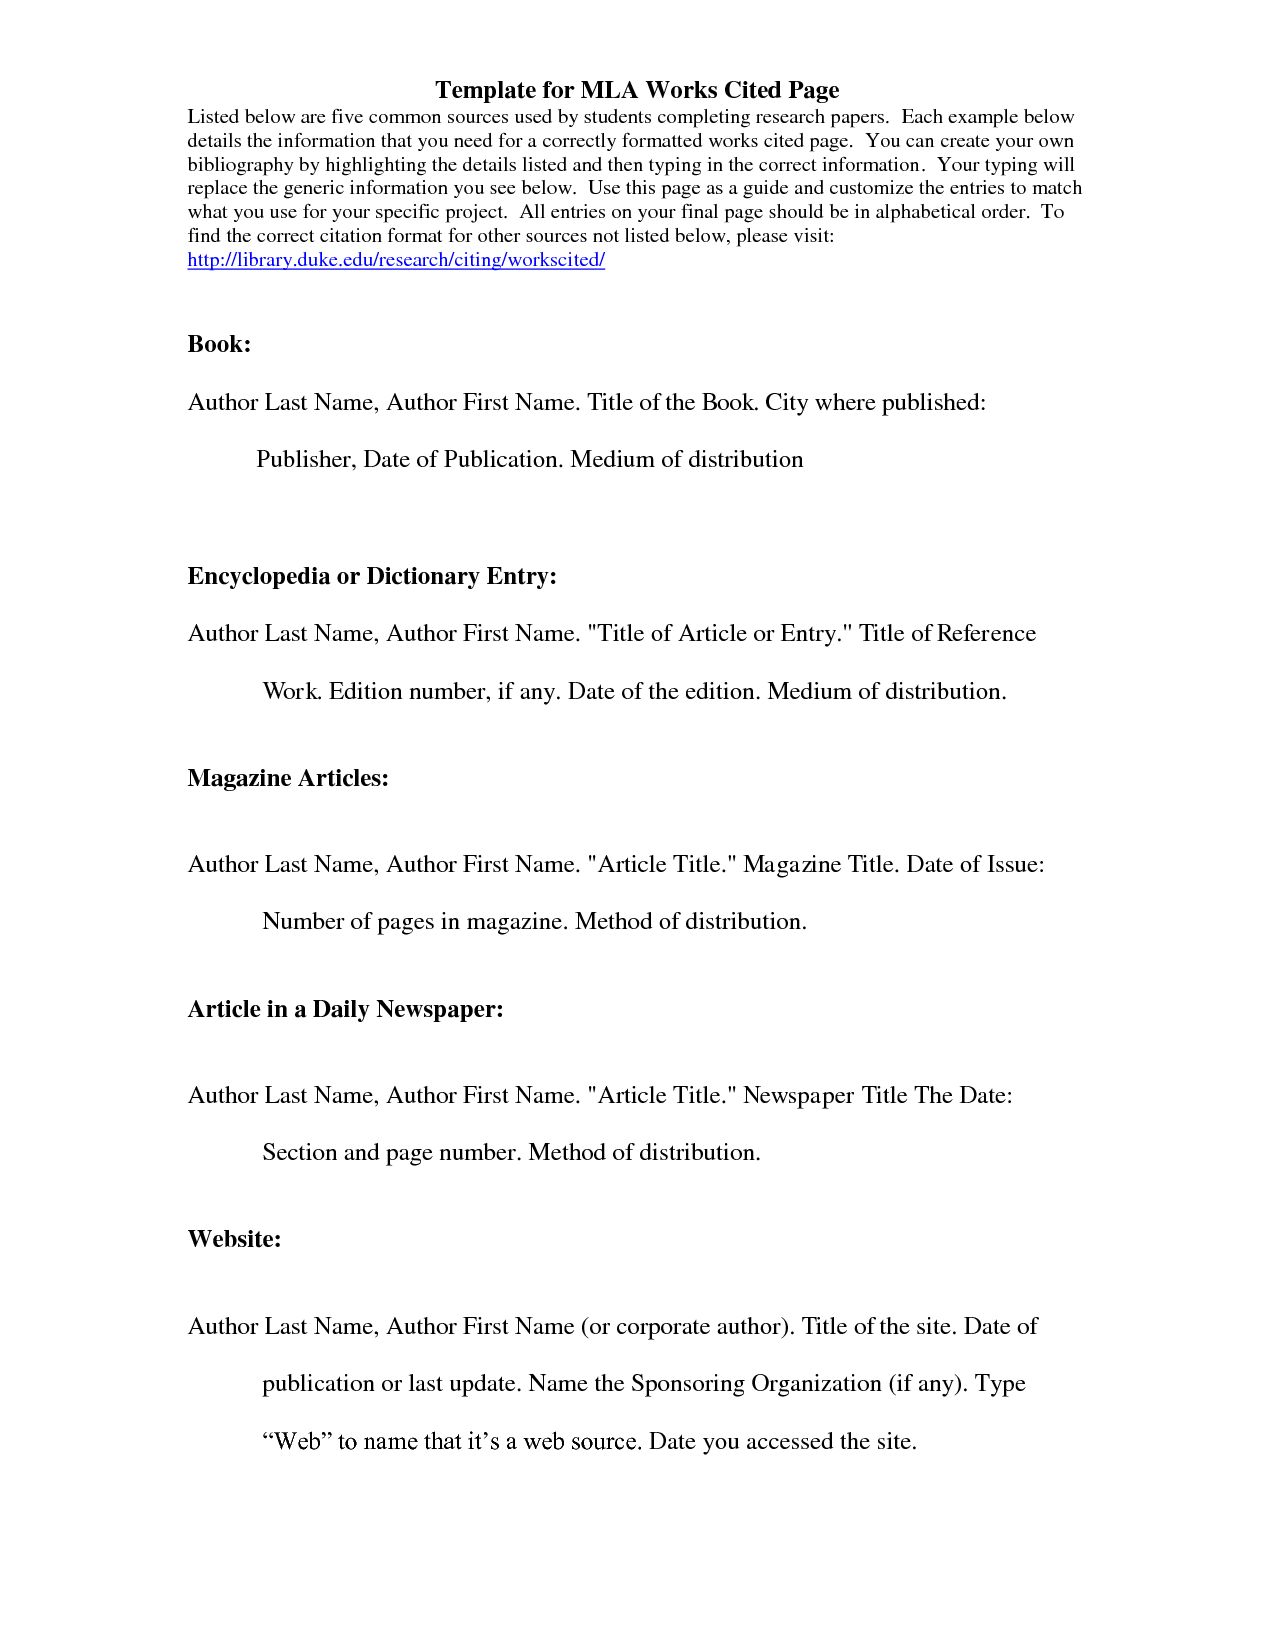 021 Brilliant Ideas Of Writing Research Papers Using Mla Documentation Cute Essay Reference Page Paper How Do You Write In Imposing A Format To Step By Examples Full